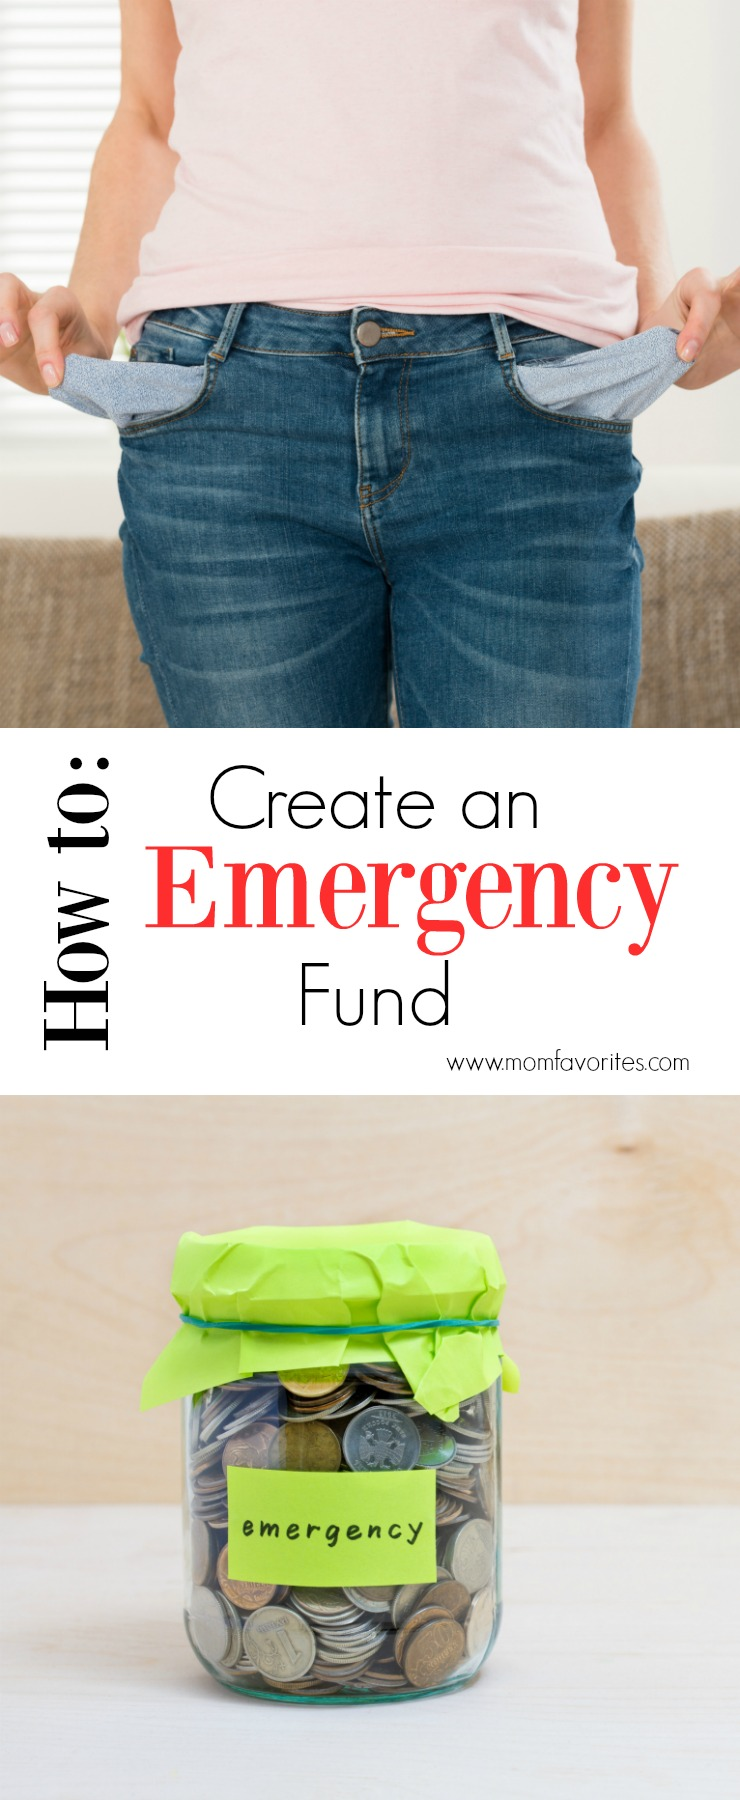 Emergencies are planned for, but you can be prepared. Be sure to get the deets on how to create an emergency fund.